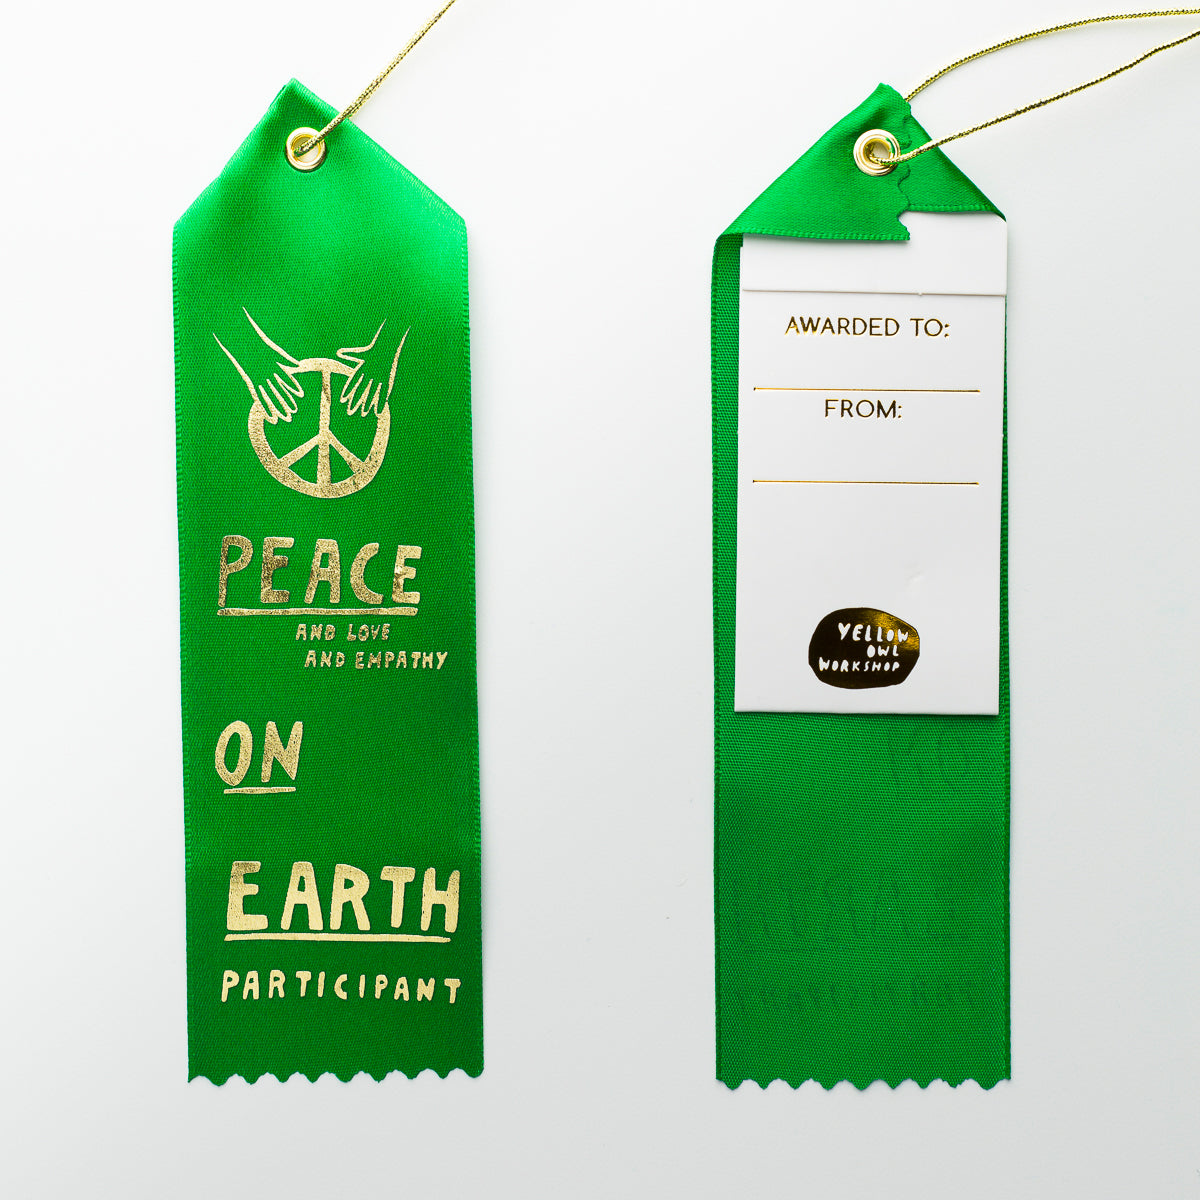 Peace On Earth Participant - Award Ribbon Card